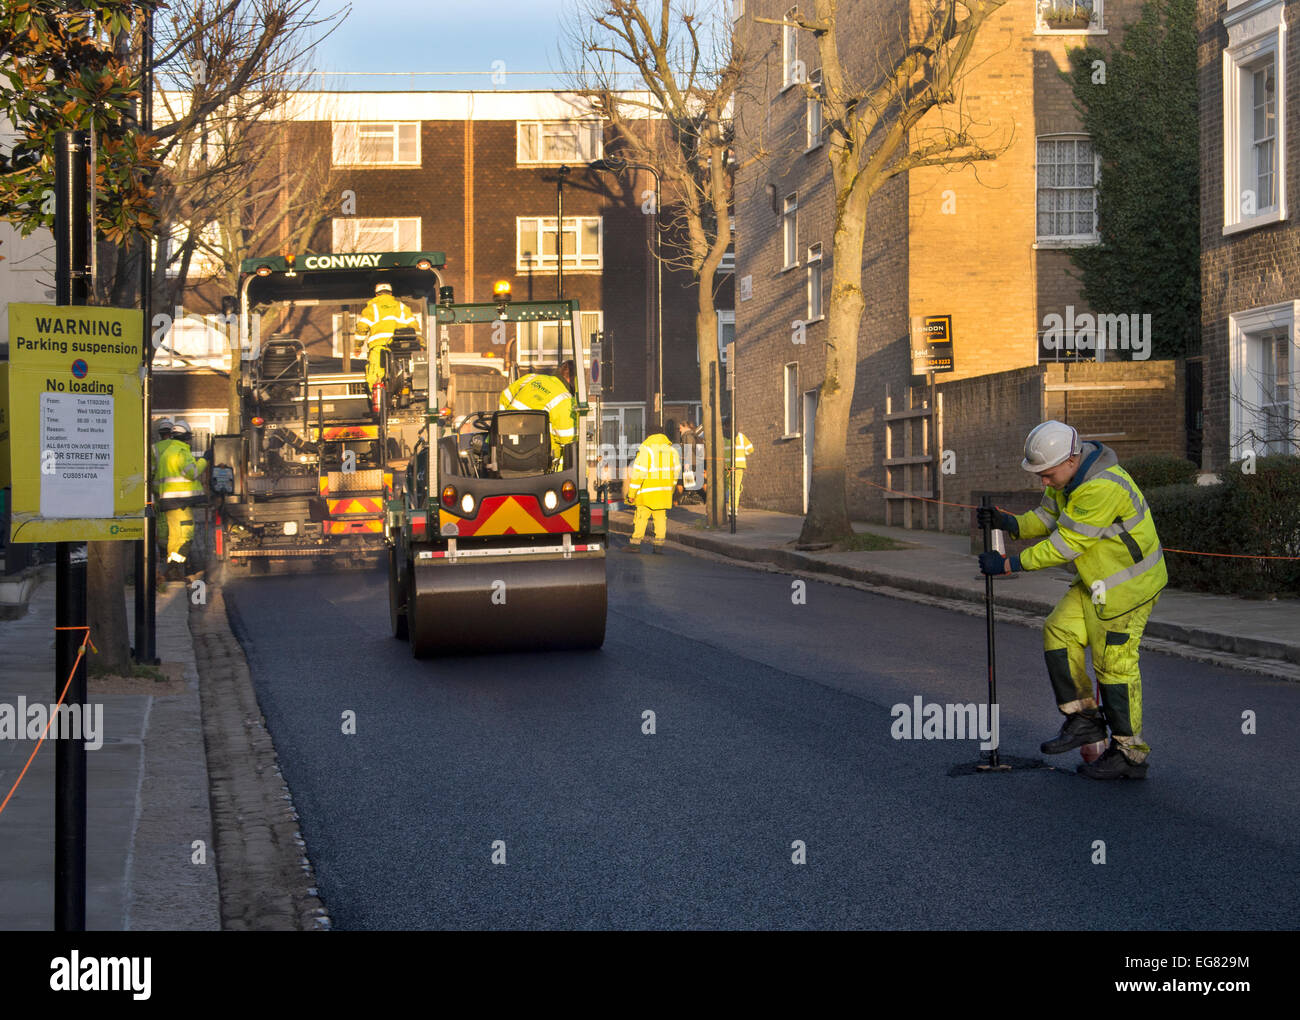 Laying a new road surface on a street in London UK - Stock Image